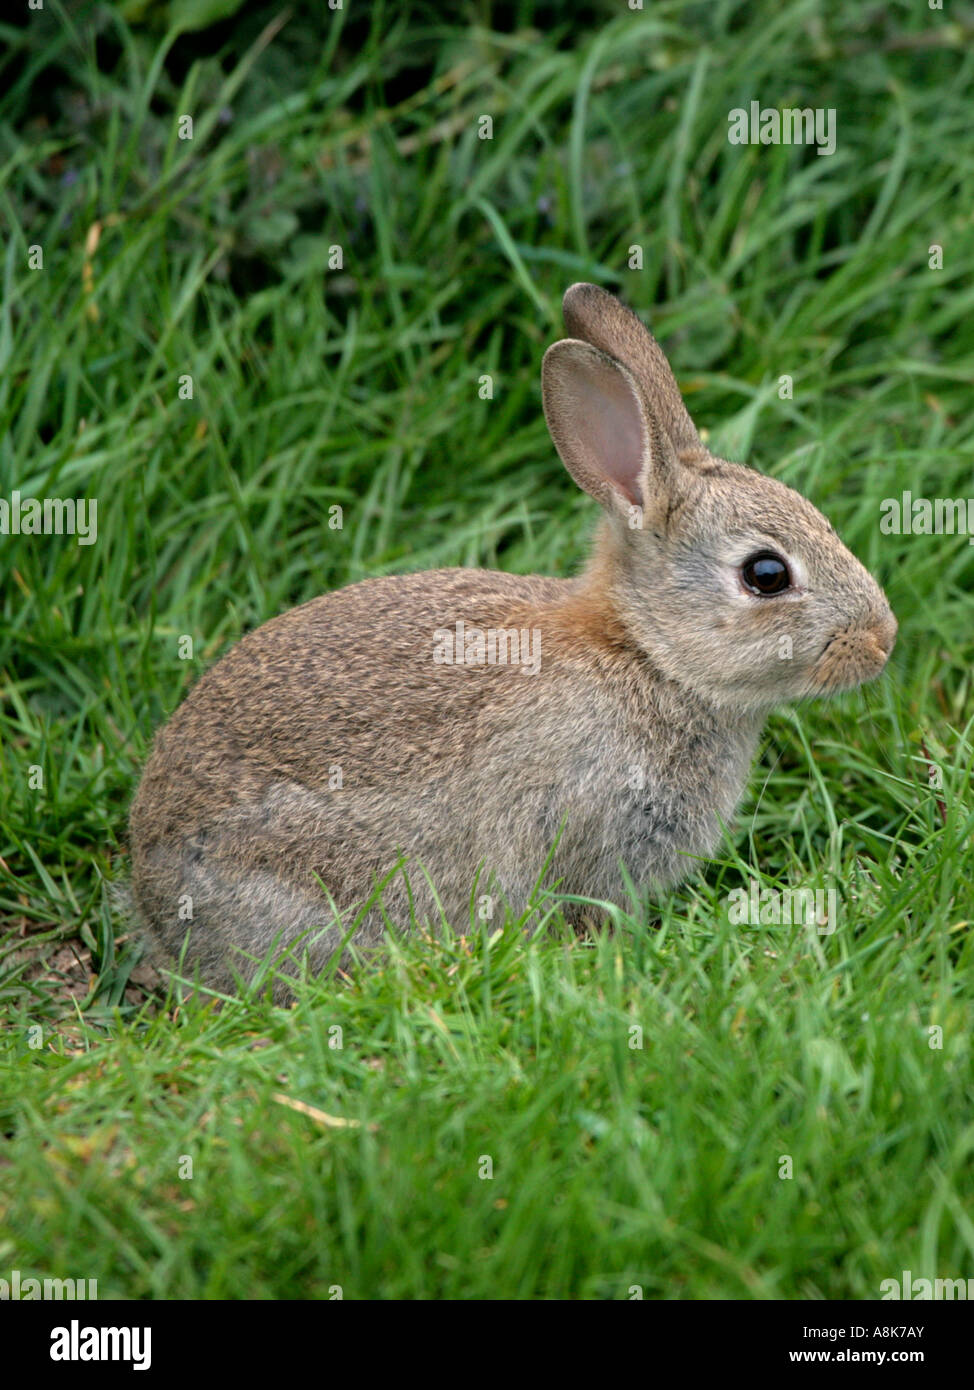 A Small Wild Rabbit In The Grass Stock Photo Royalty Free